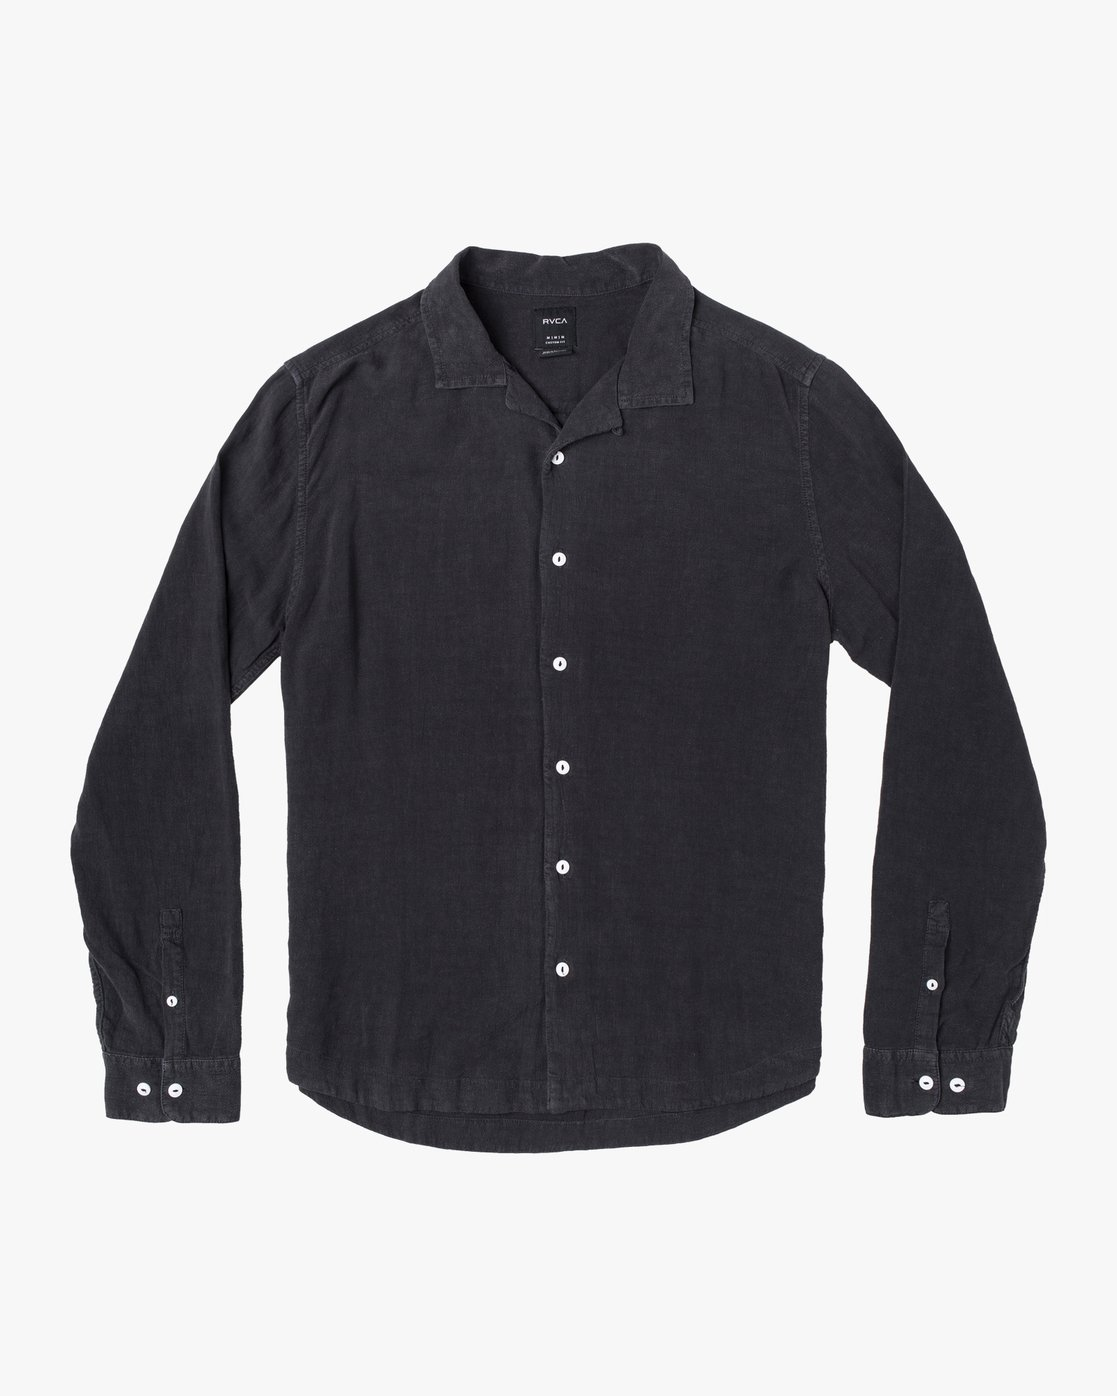 6 BEAT LONG SLEEVE SHIRT Black M5513RBL RVCA